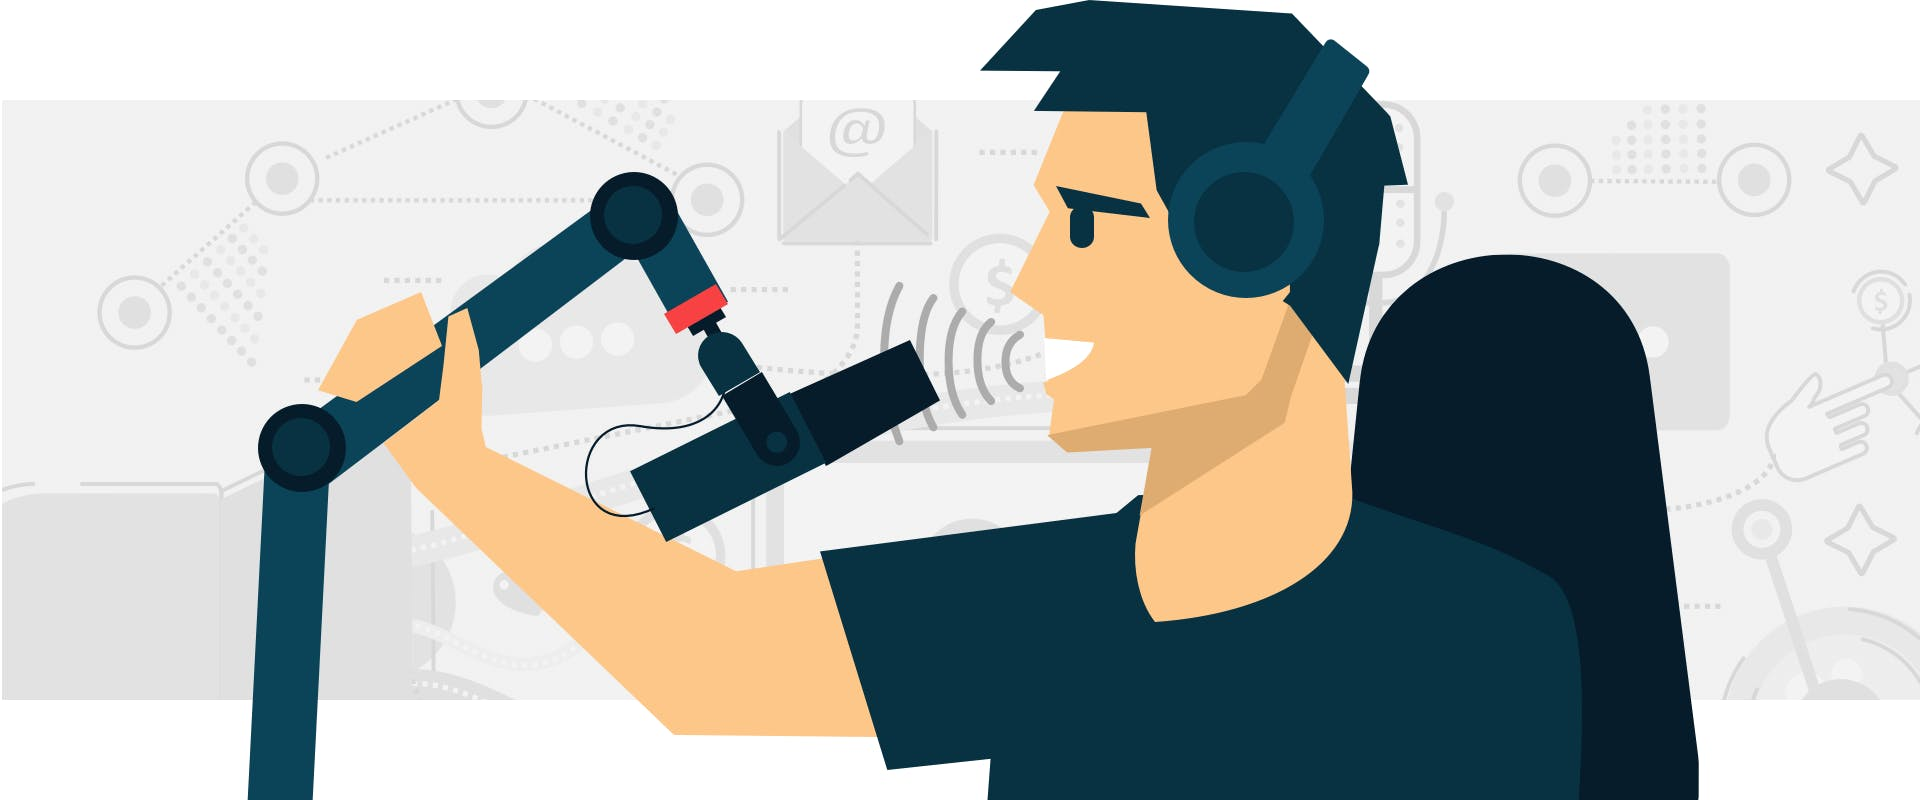 The Complete Guide to Microphone Technique for Podcasters